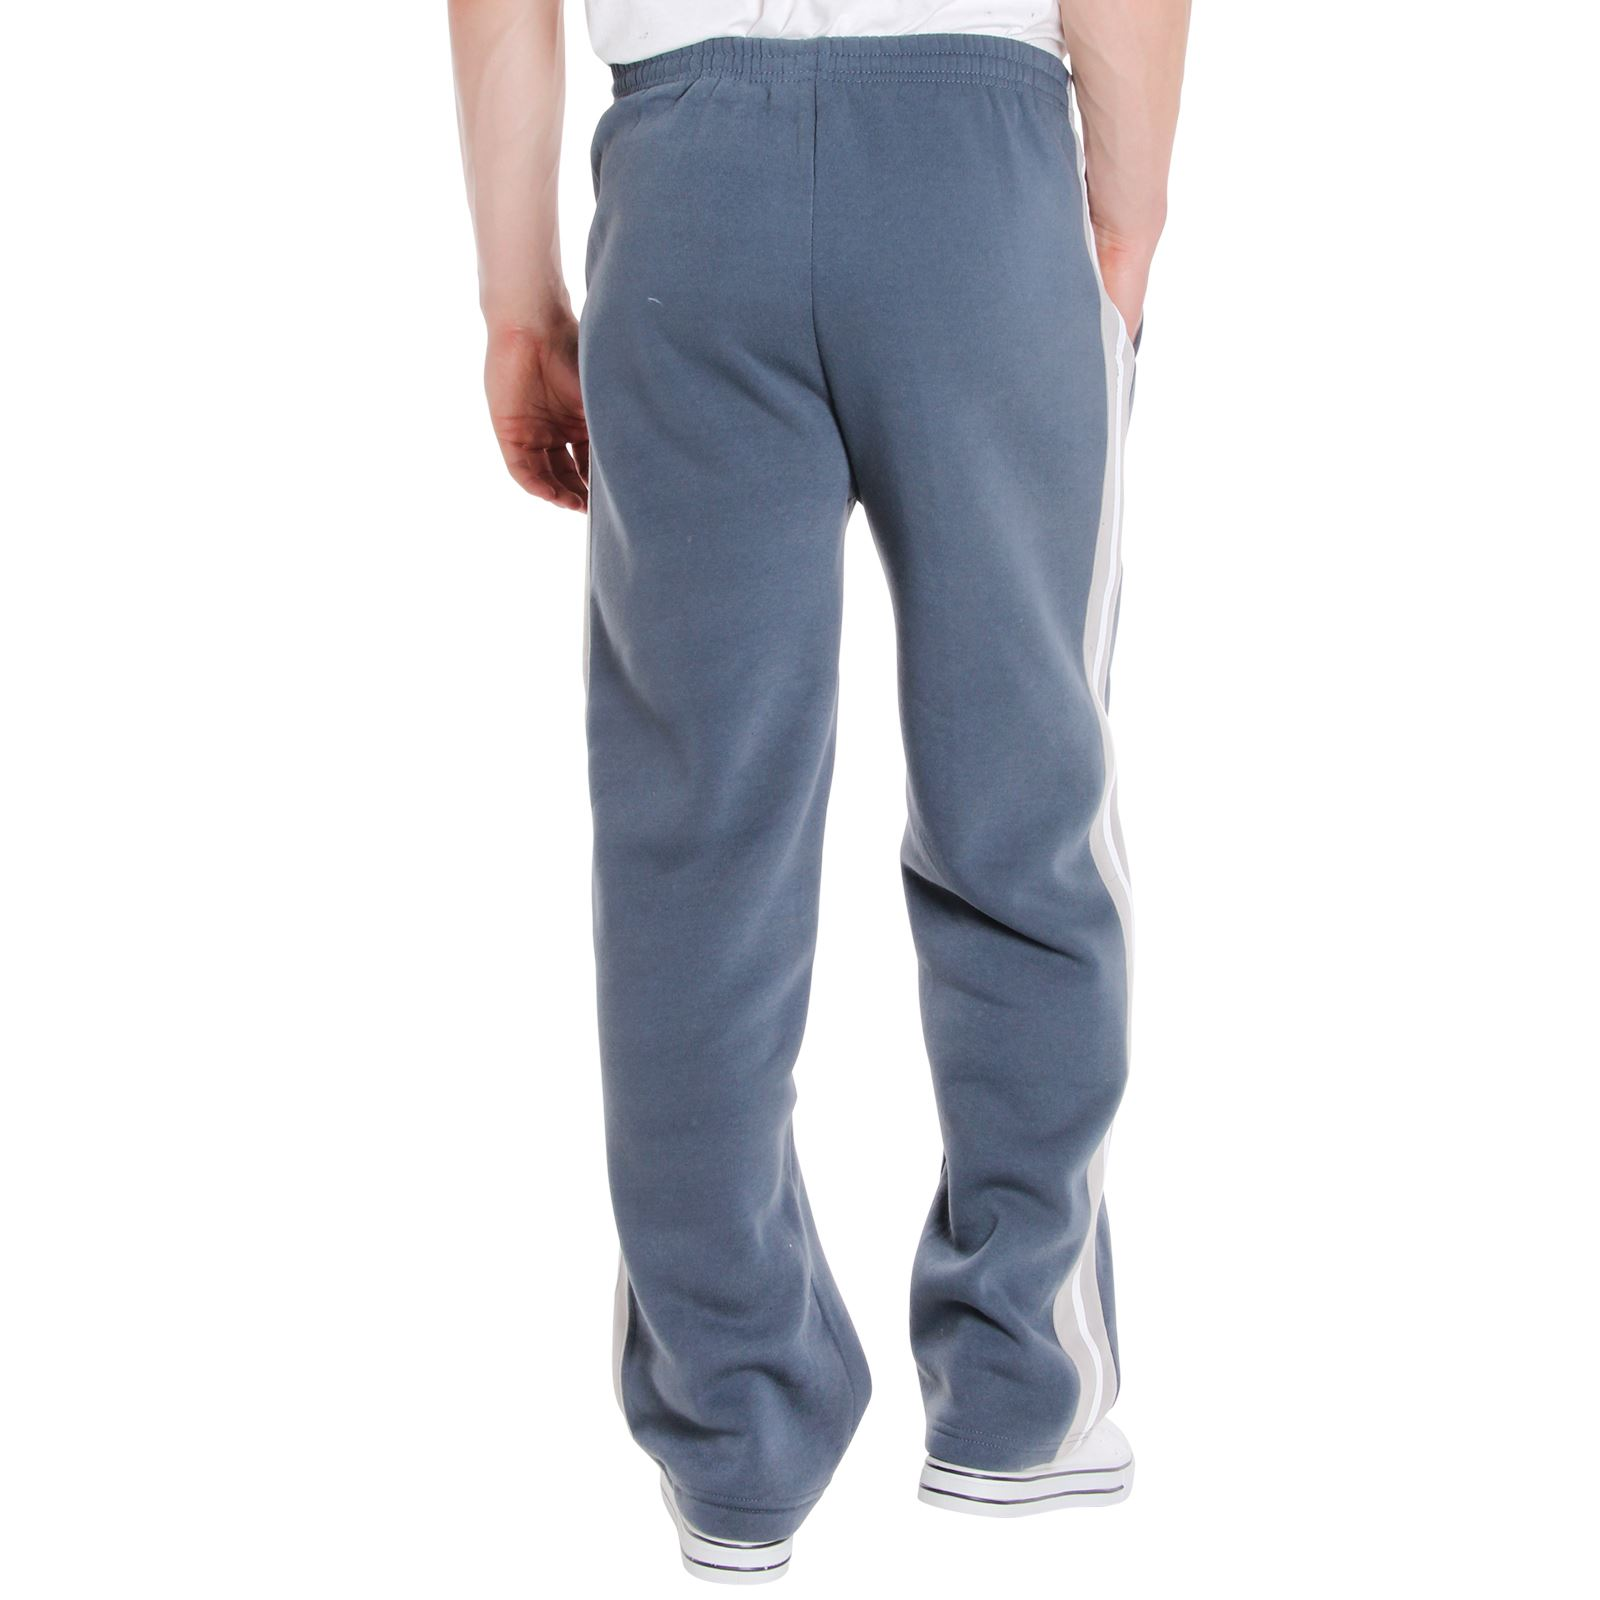 Mens-Tracksuit-Bottoms-Striped-Joggers-Jogging-Trousers-Fleece-Pants-Casual-Work thumbnail 15